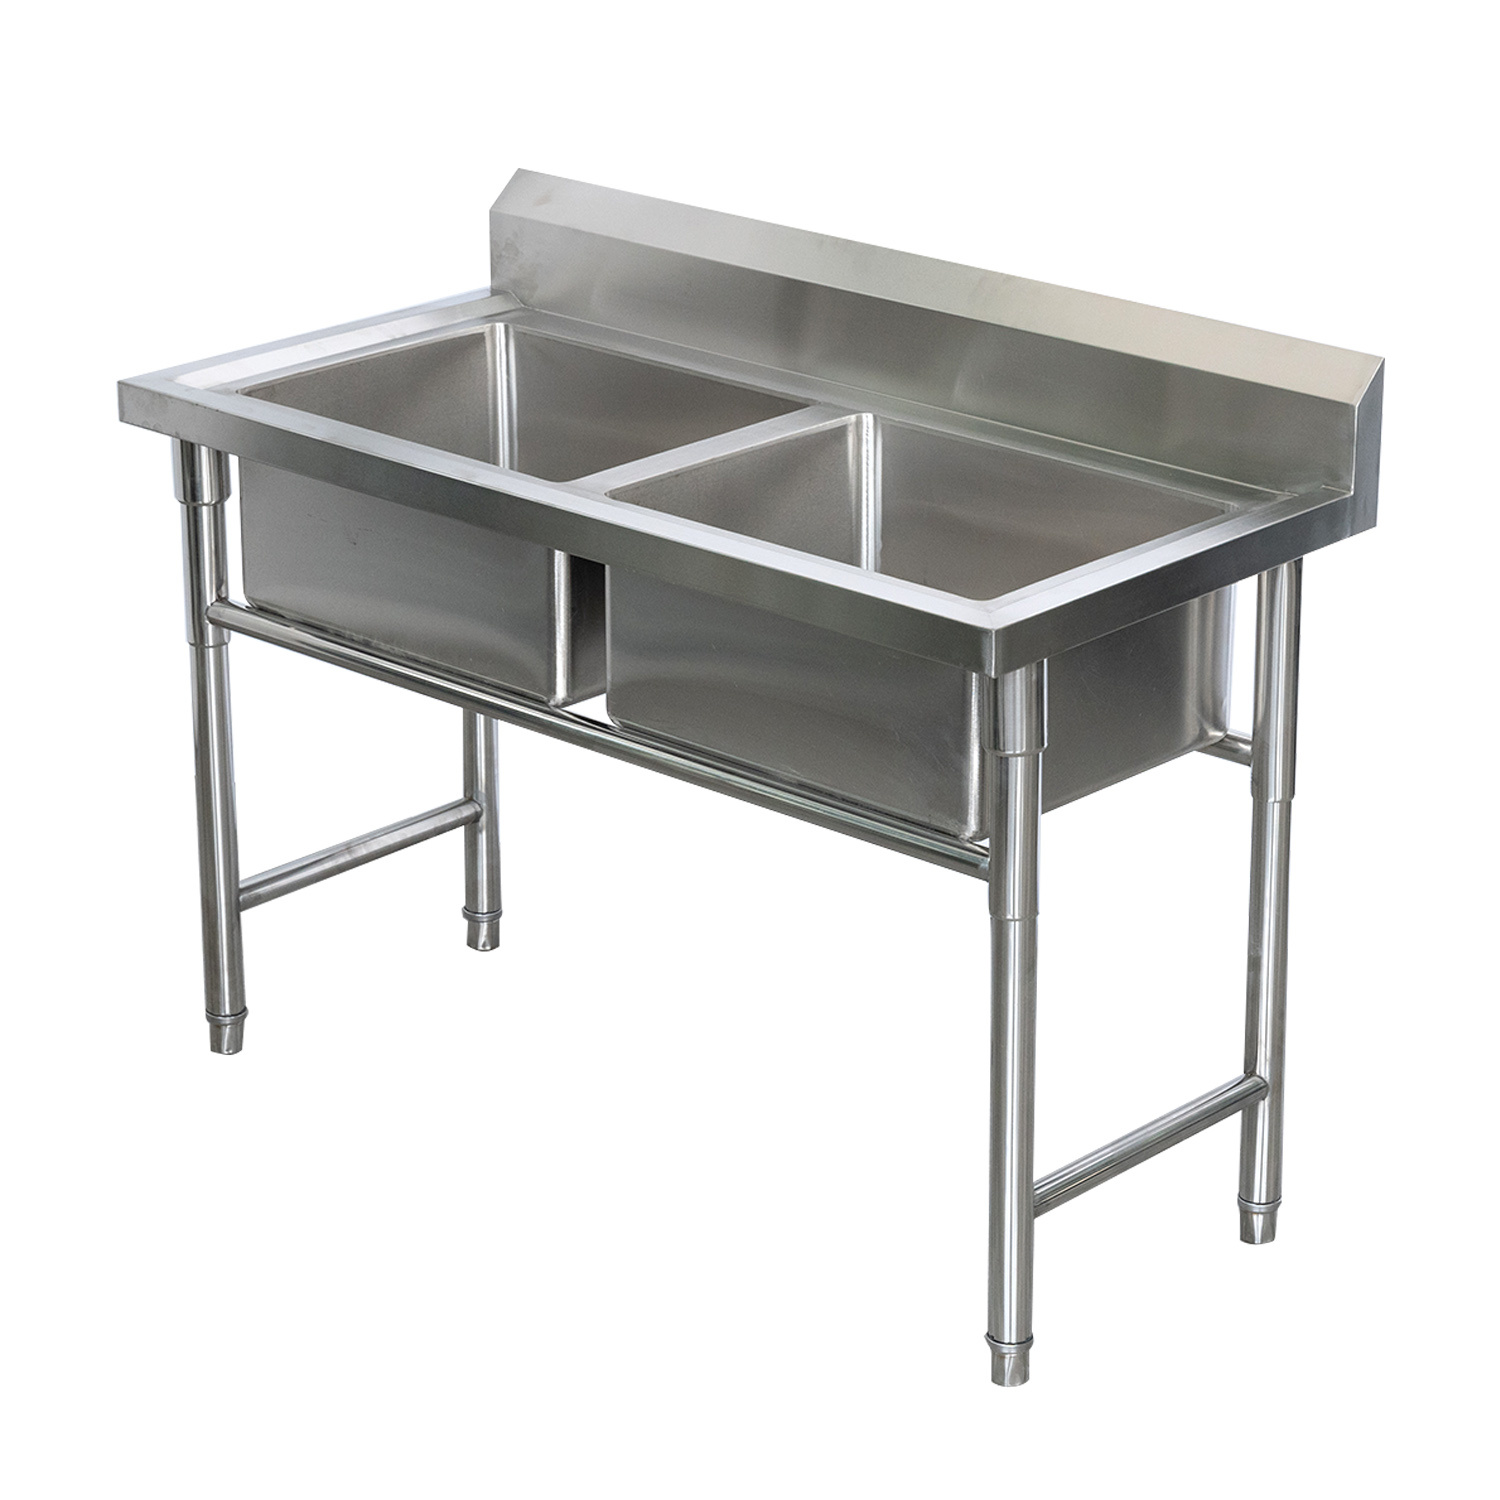 China Restaurant Commercial Sink Aluminum Lanka Double Bowl Stainless Steel Kitchen Sink China Stainless Steel Sink Kitchen Sink